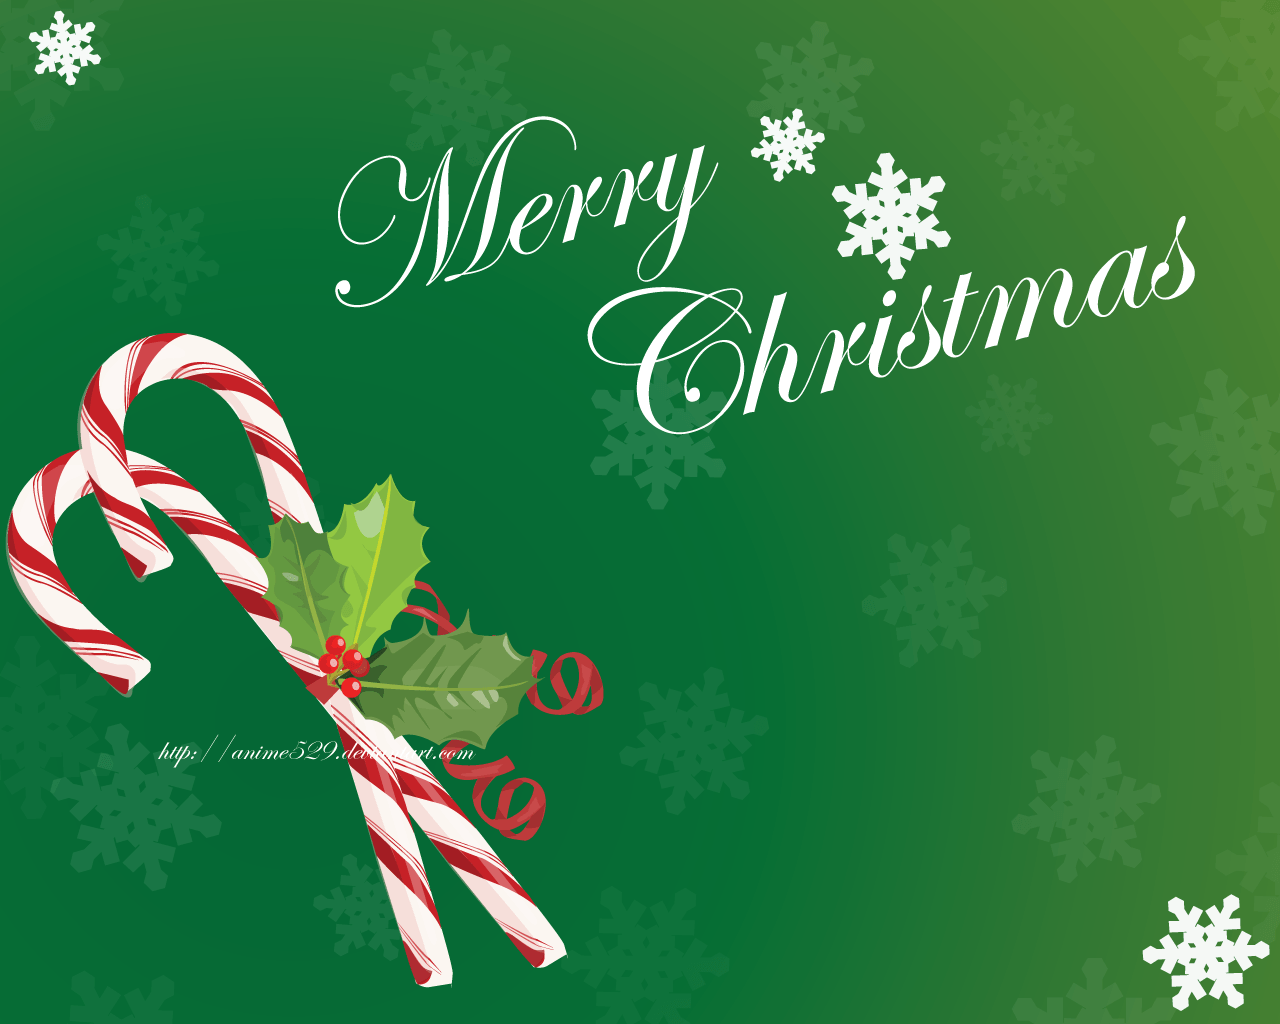 Candy Canes image merry christmas HD wallpapers and backgrounds